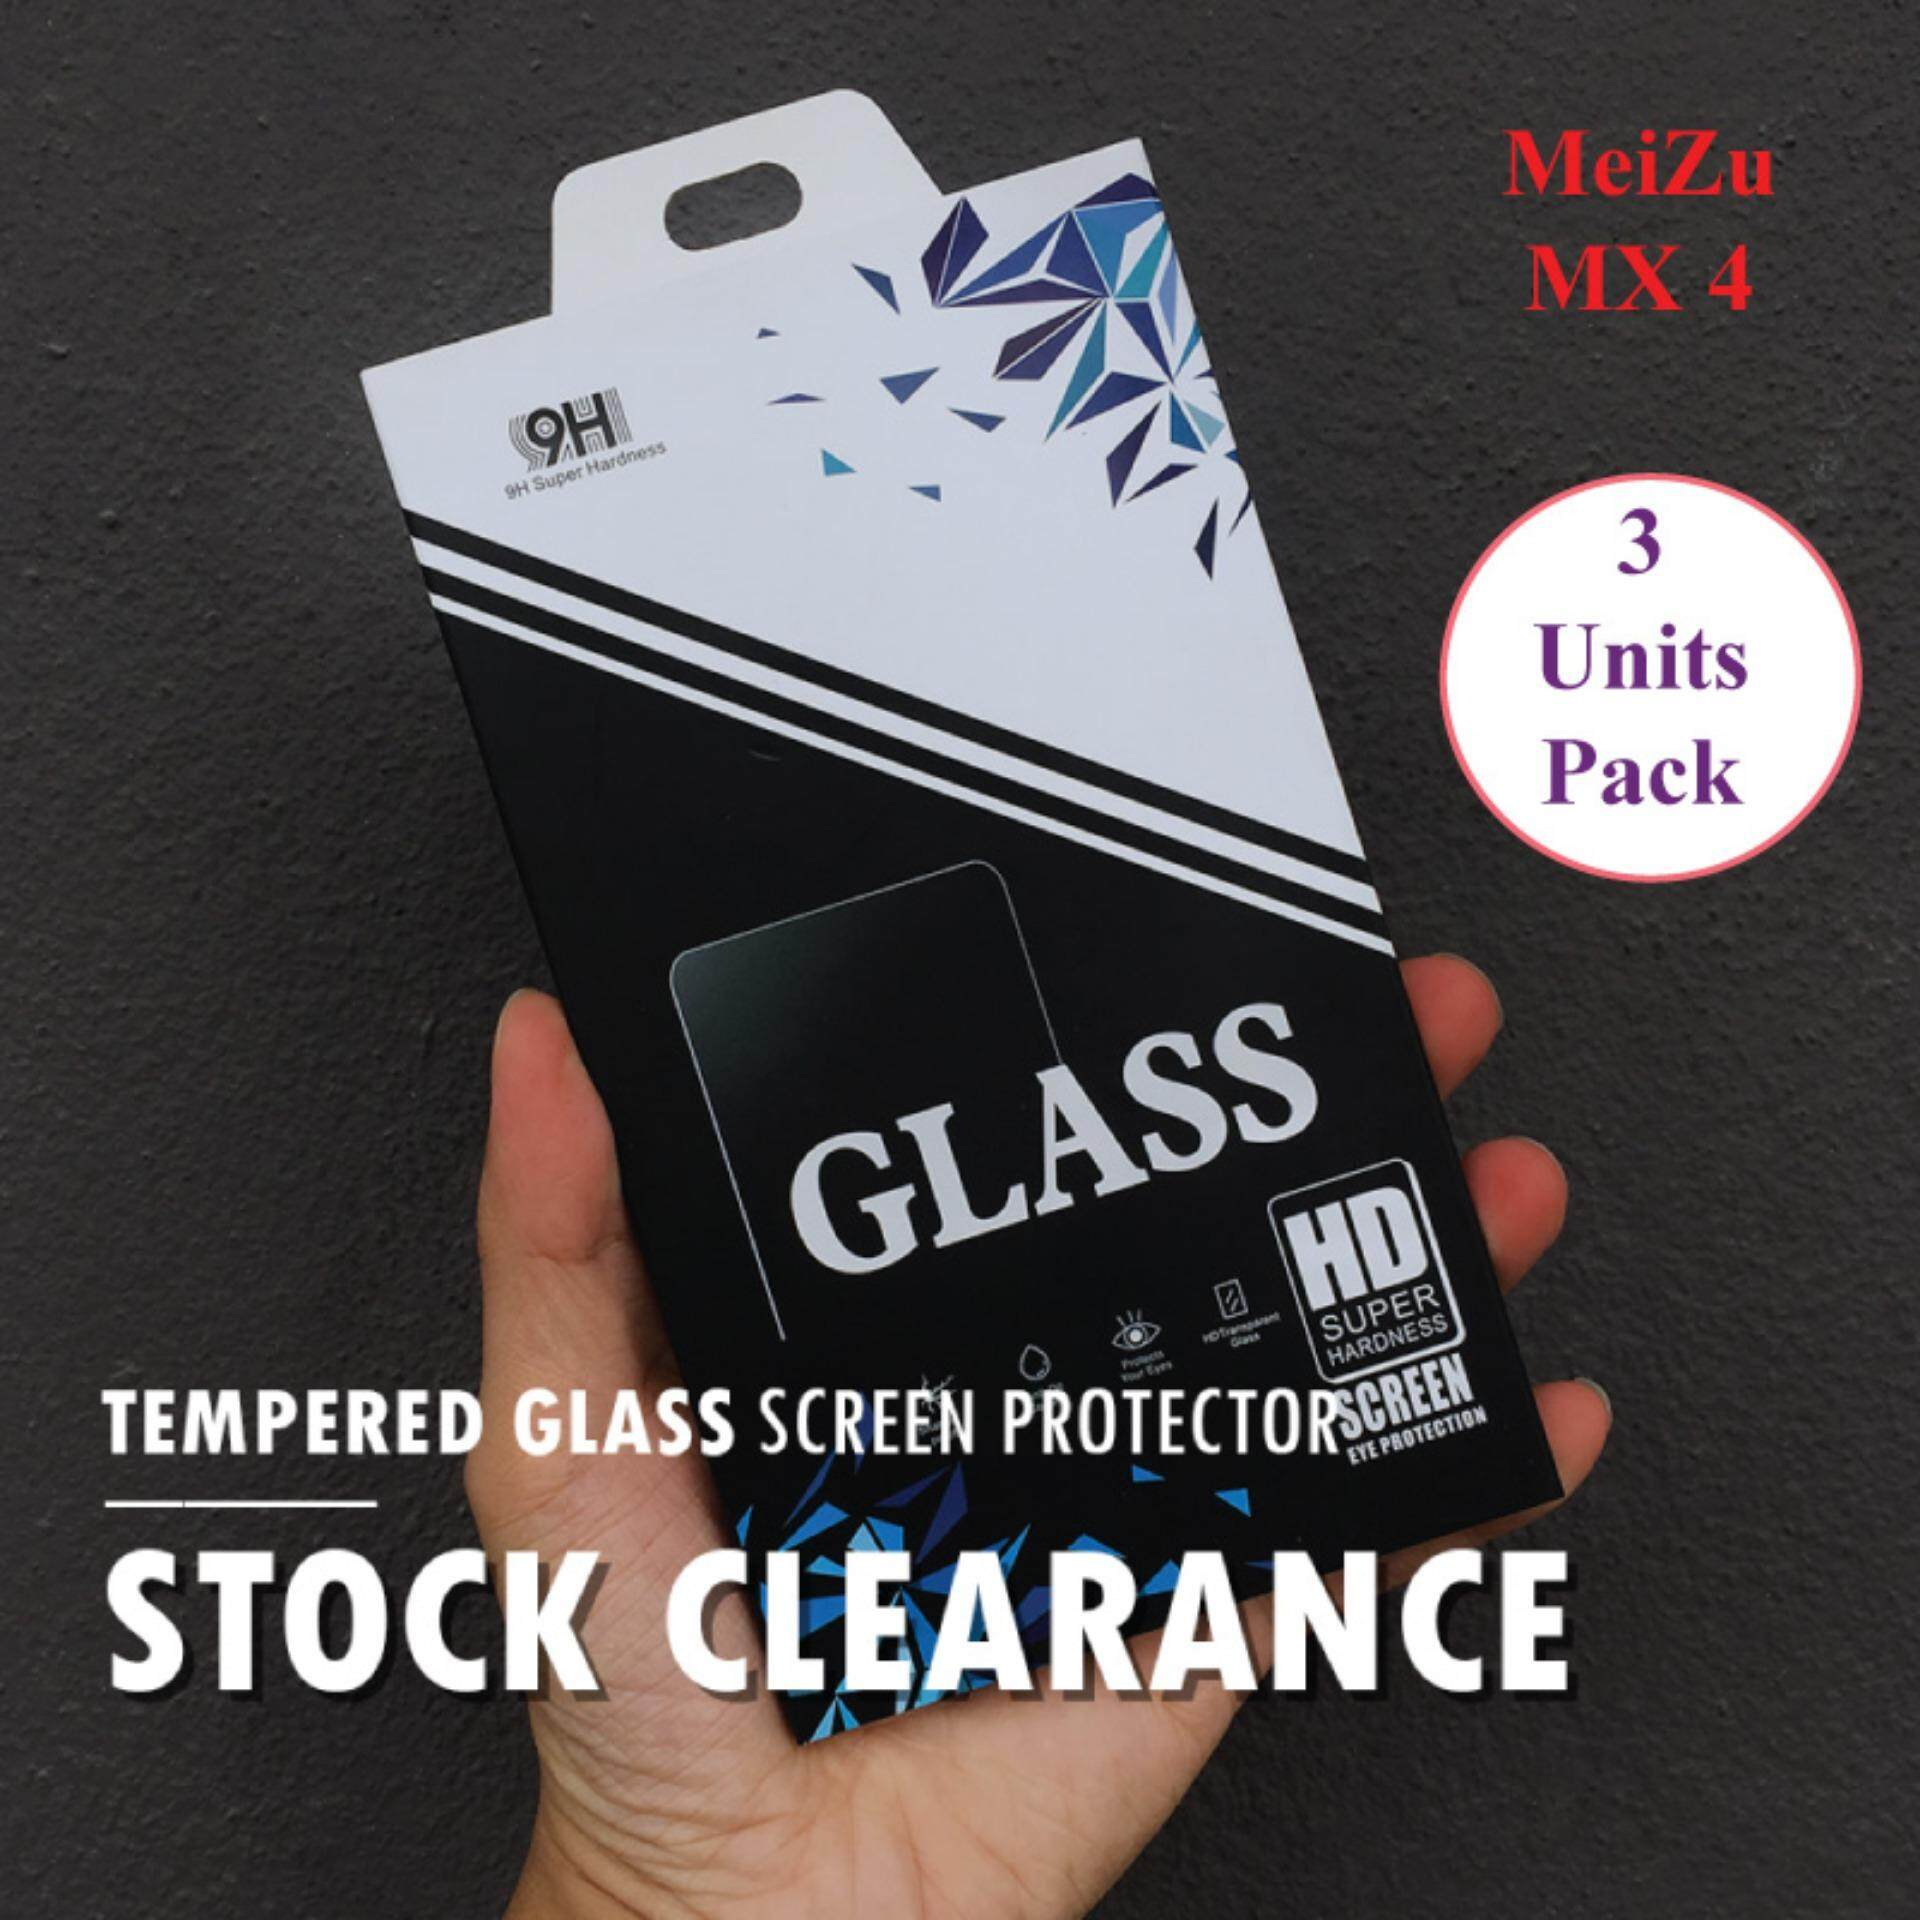 [Clear] Tempered Glass For Meizu MX4 (3 Units Pack )